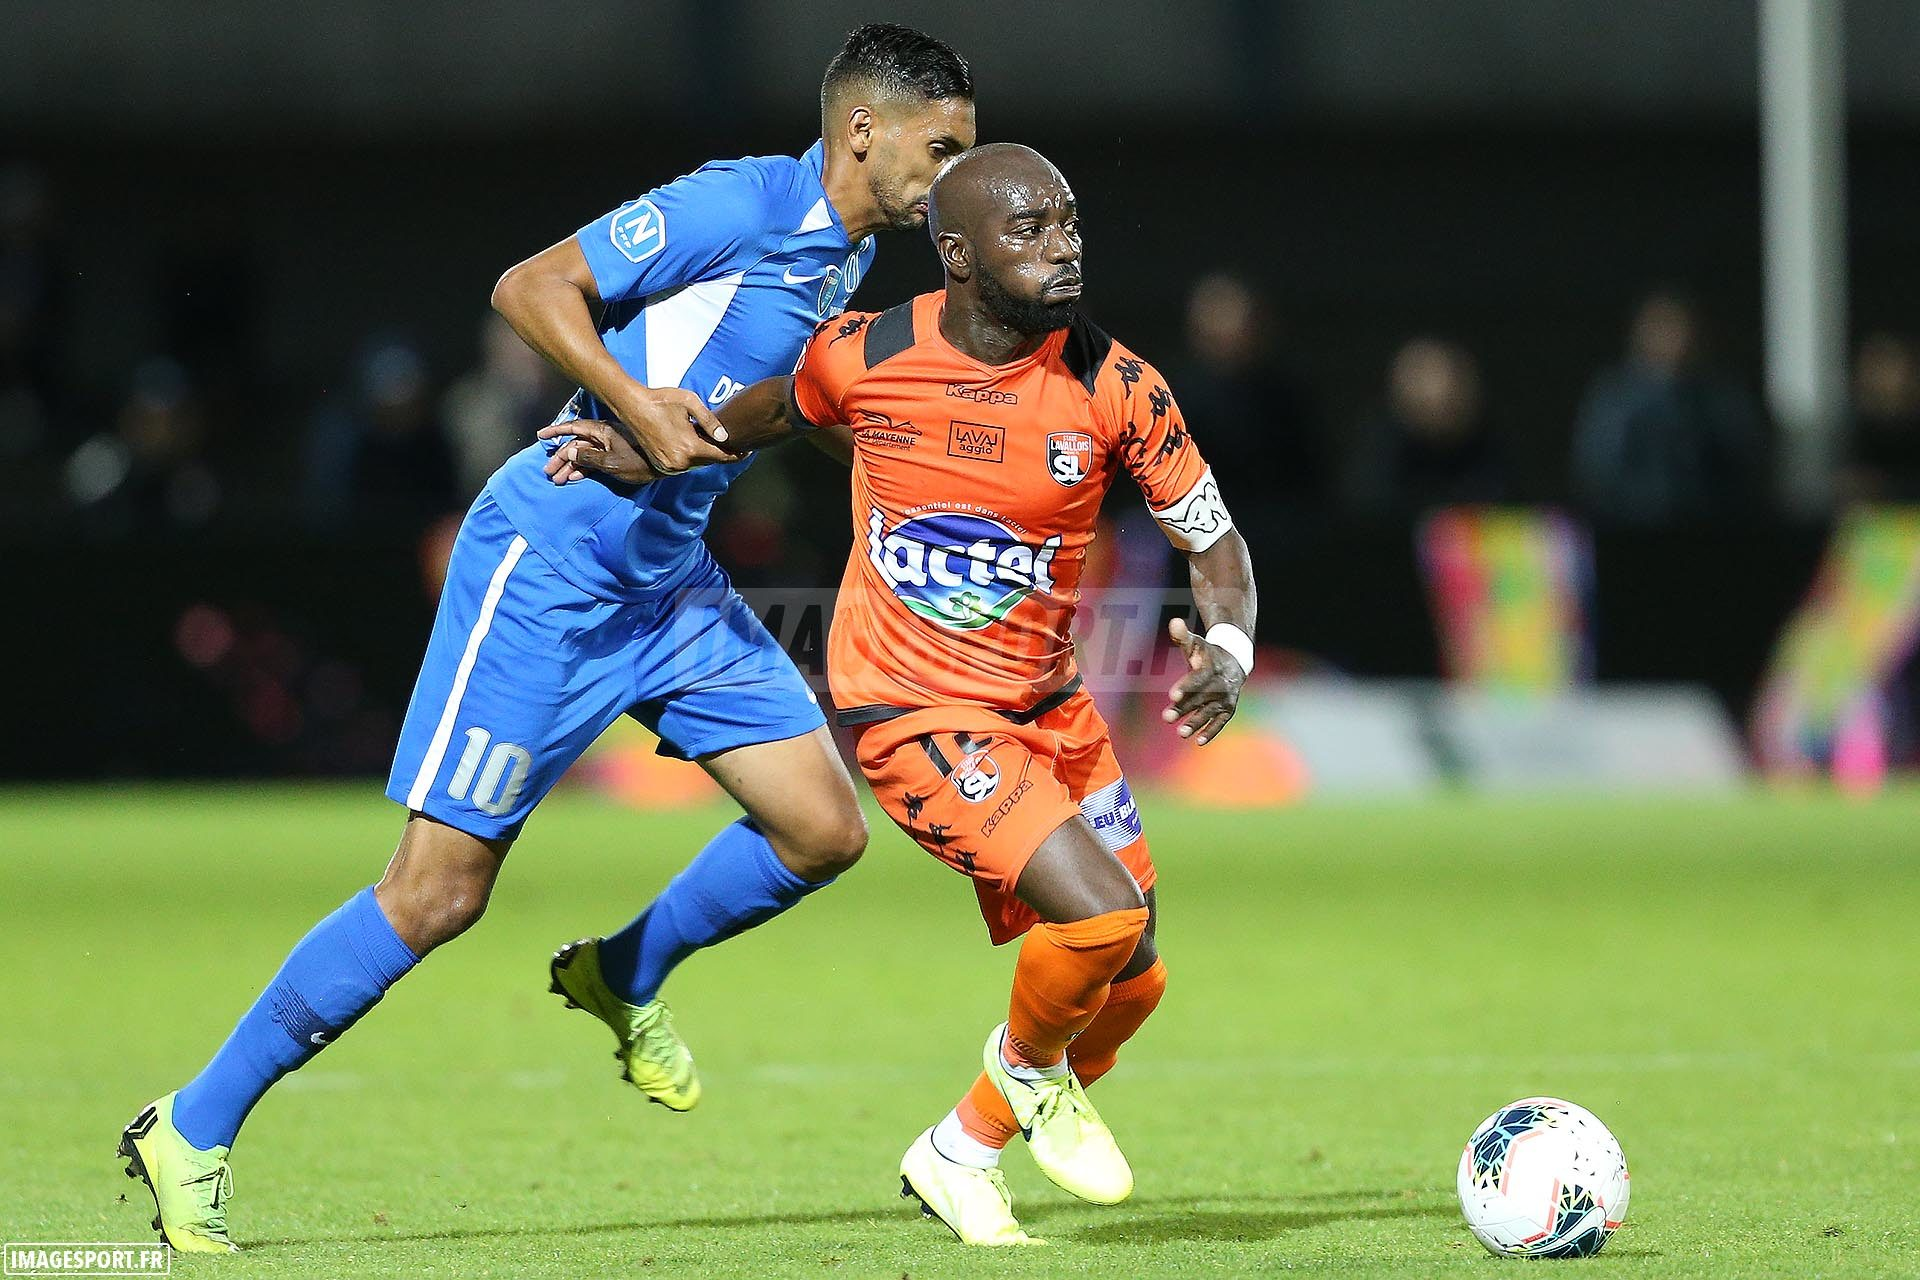 national-stade-lavallois-fbbp01-2019-2020_15